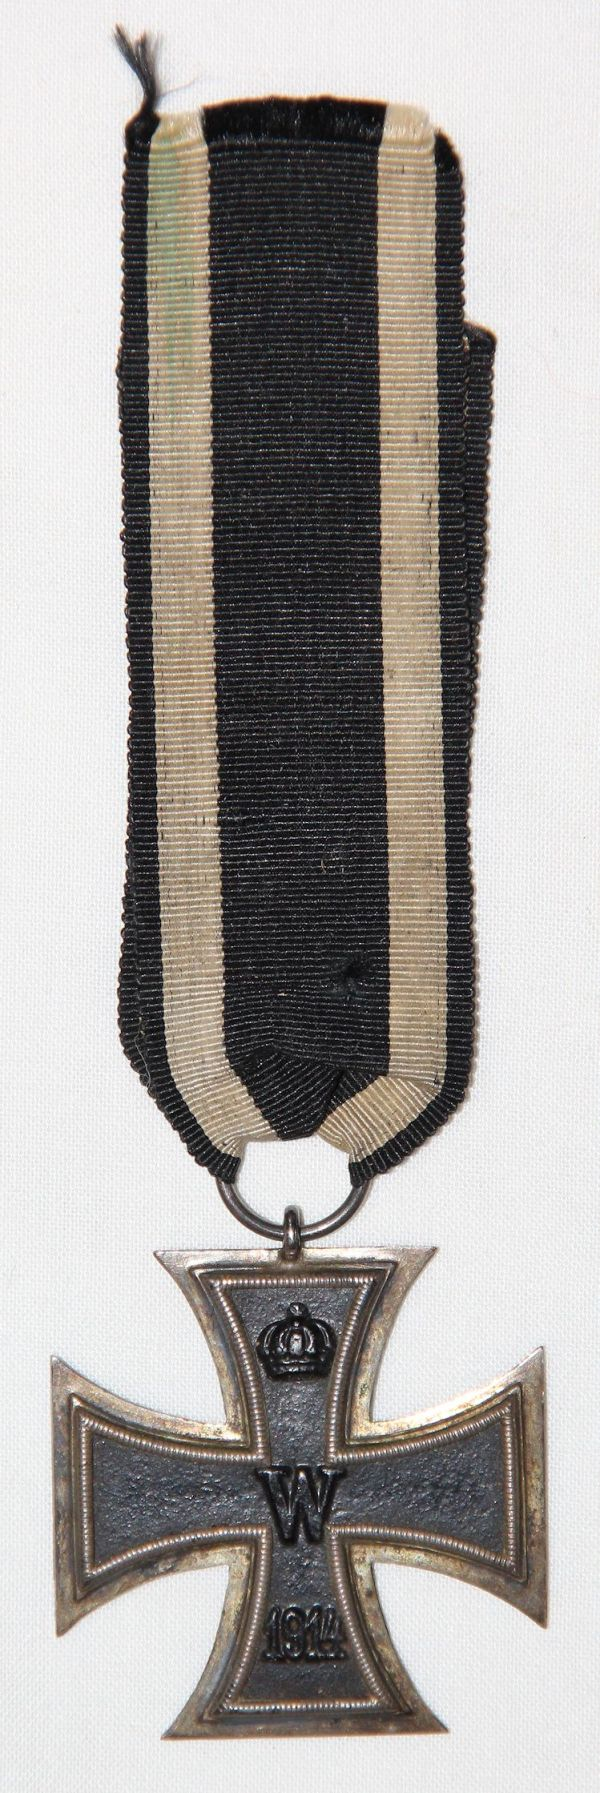 B006. WWI GERMAN 2ND CLASS IRON CROSS W/ RIBBON